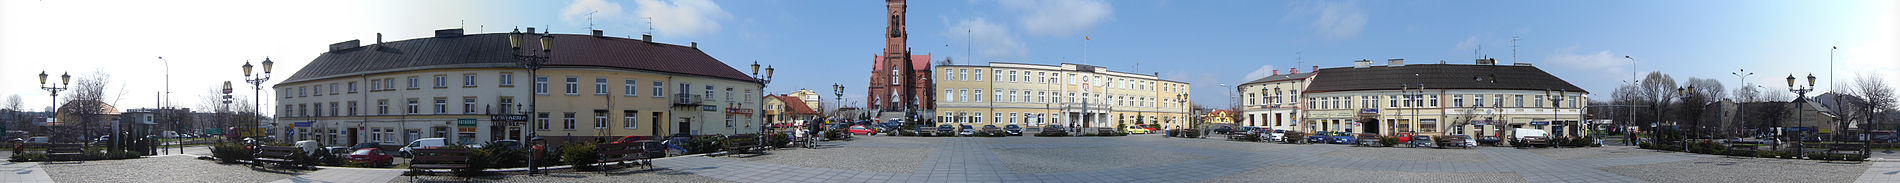 Zgierz-town-square-2012-04-13.jpg